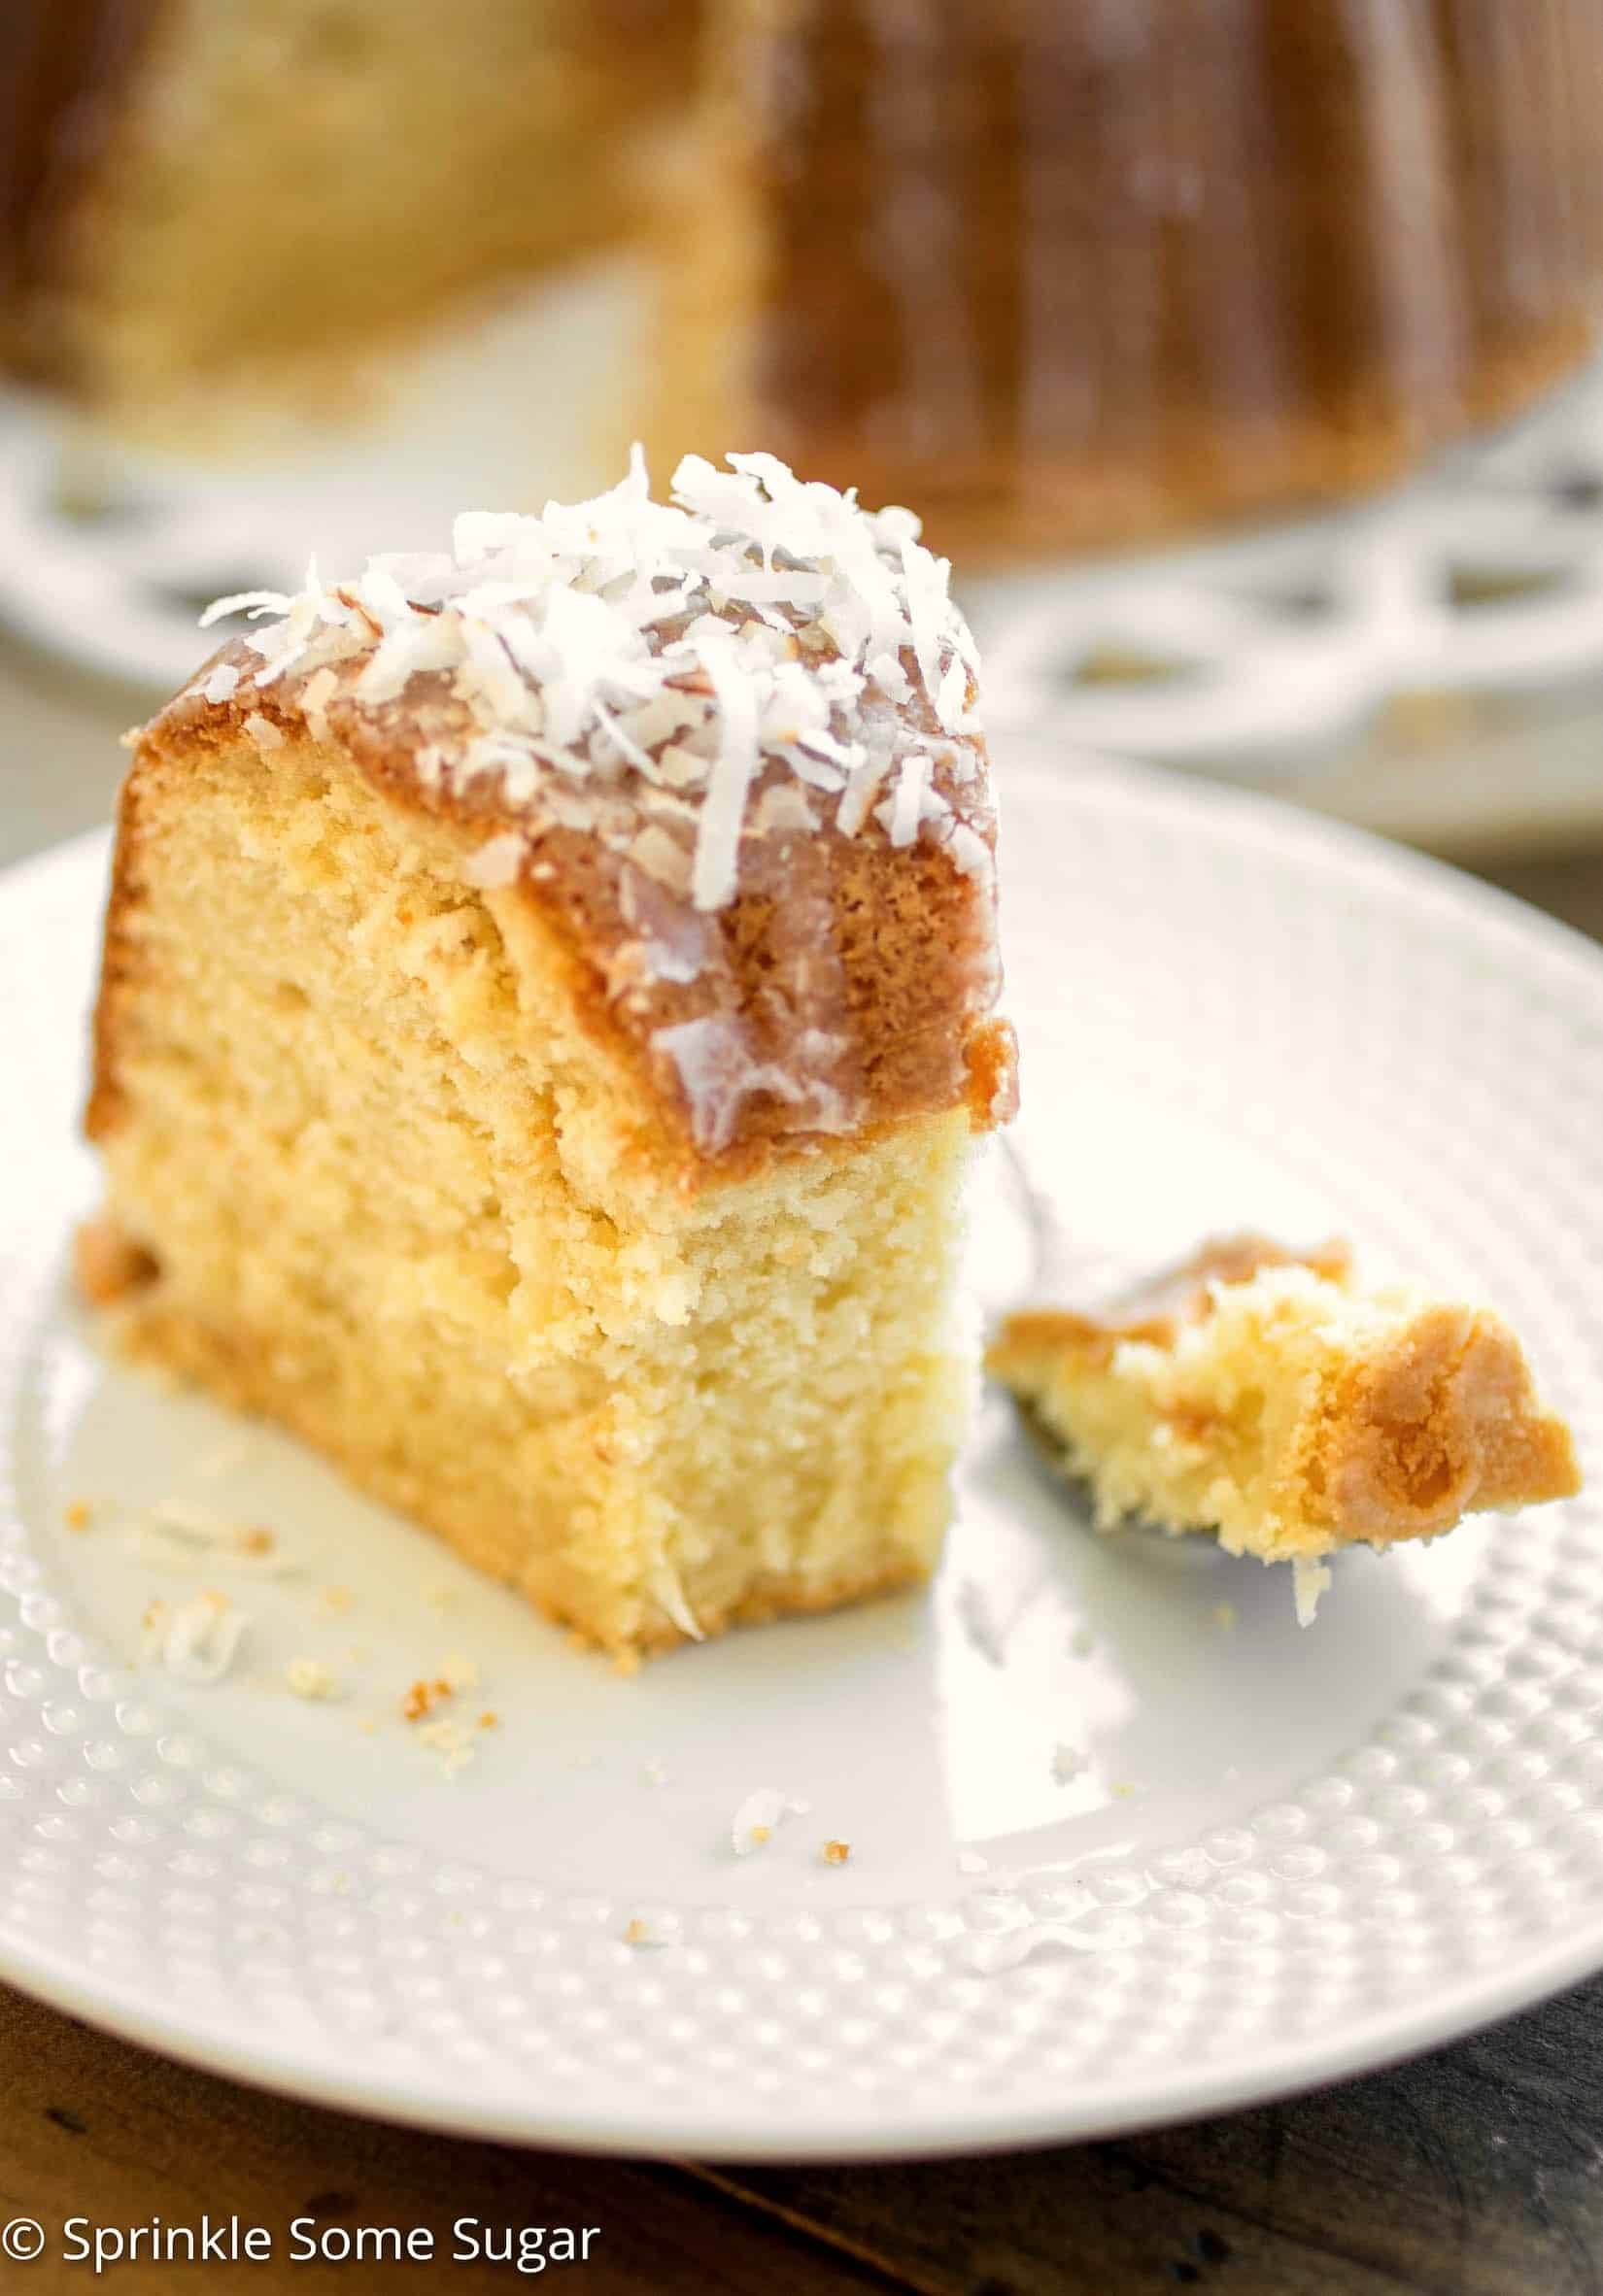 Coconut Pound Cake - This pound cake has the softest, velvet-y texture and is loaded with lots of coconut flavor.